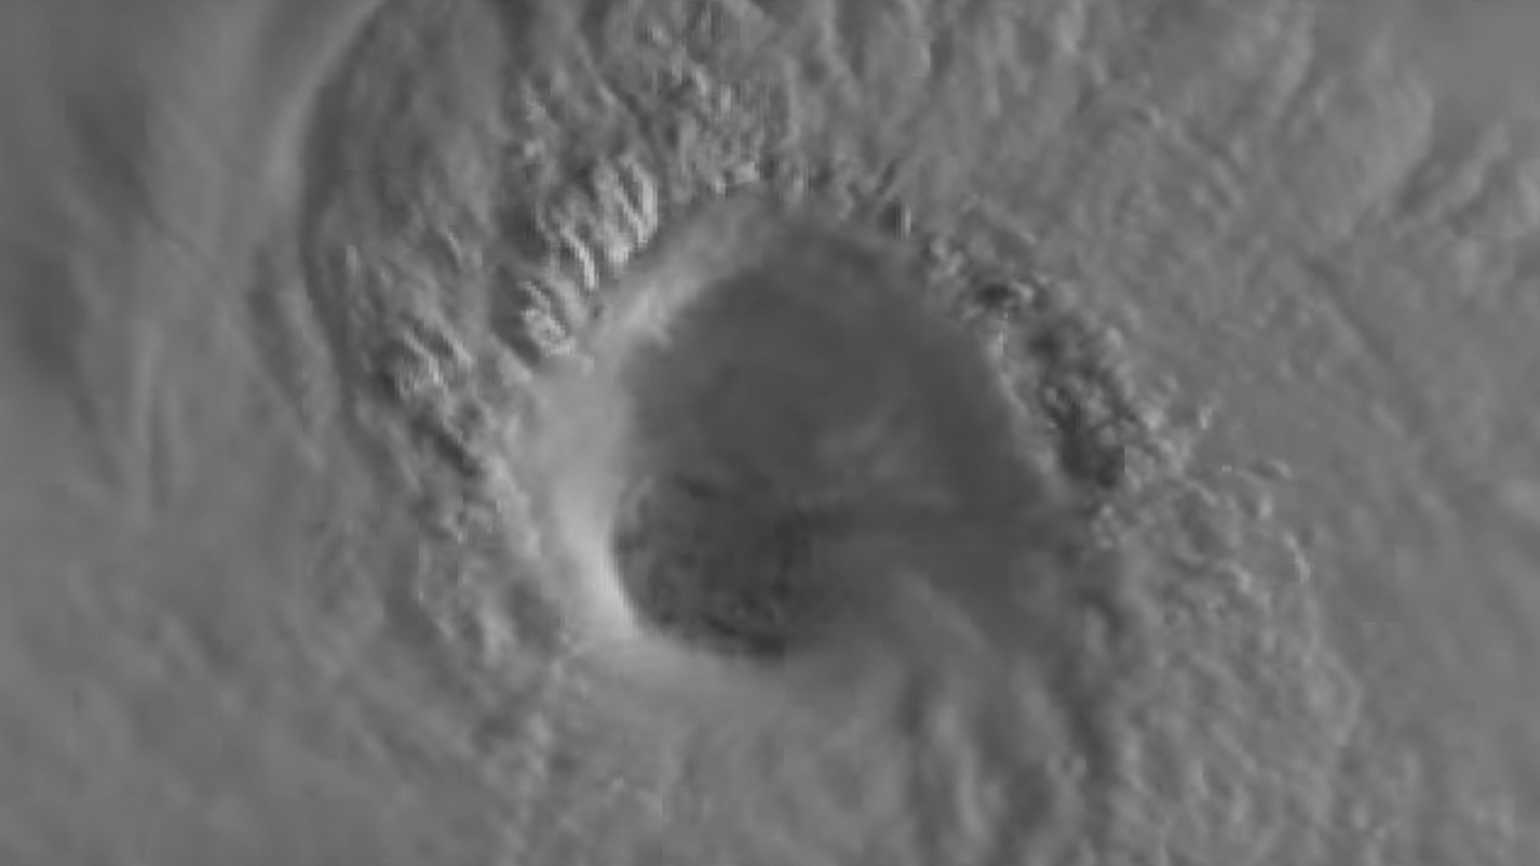 A satellite image of Hurrican Irma